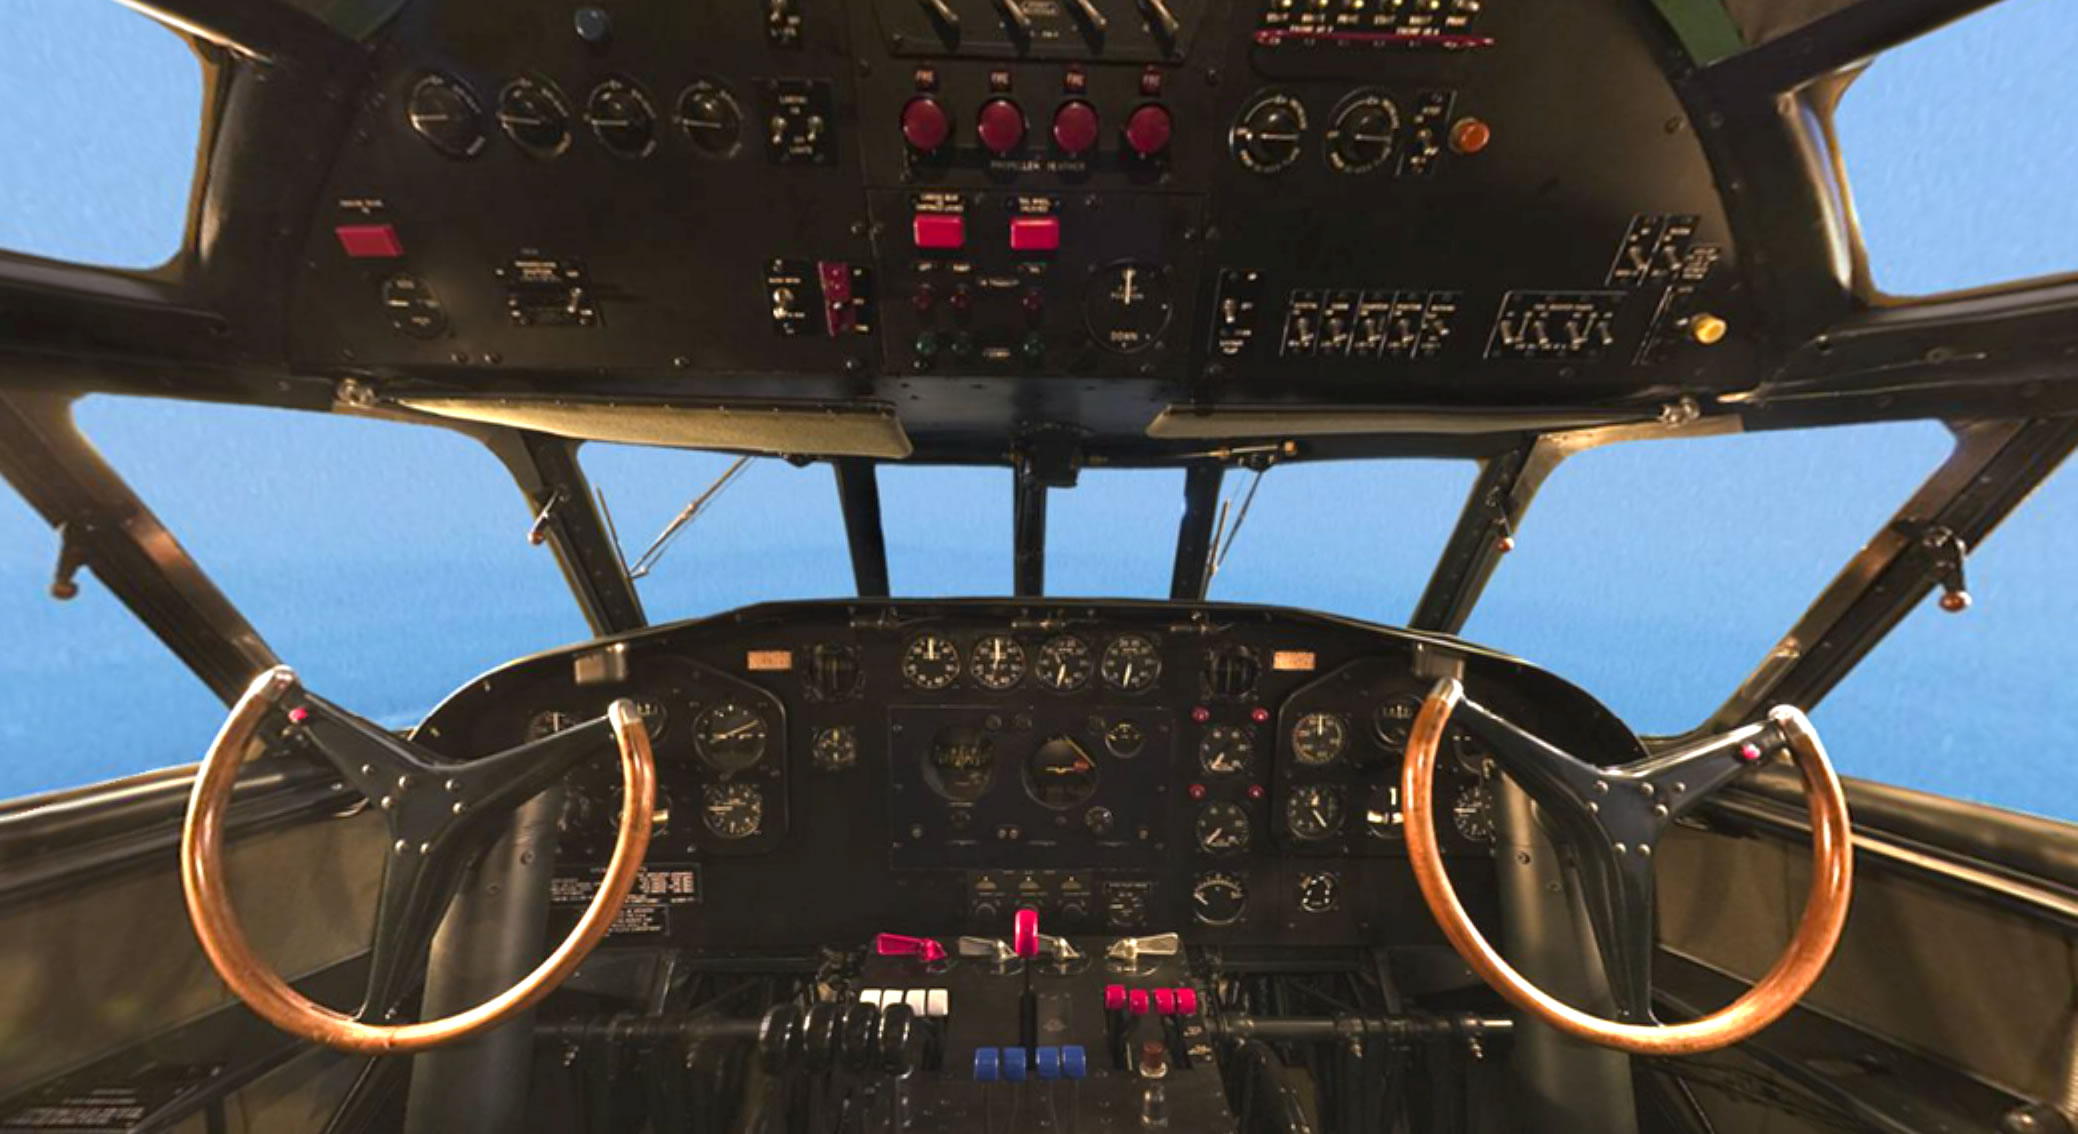 View inside the cockpit of the Boeing 307 Stratoliner